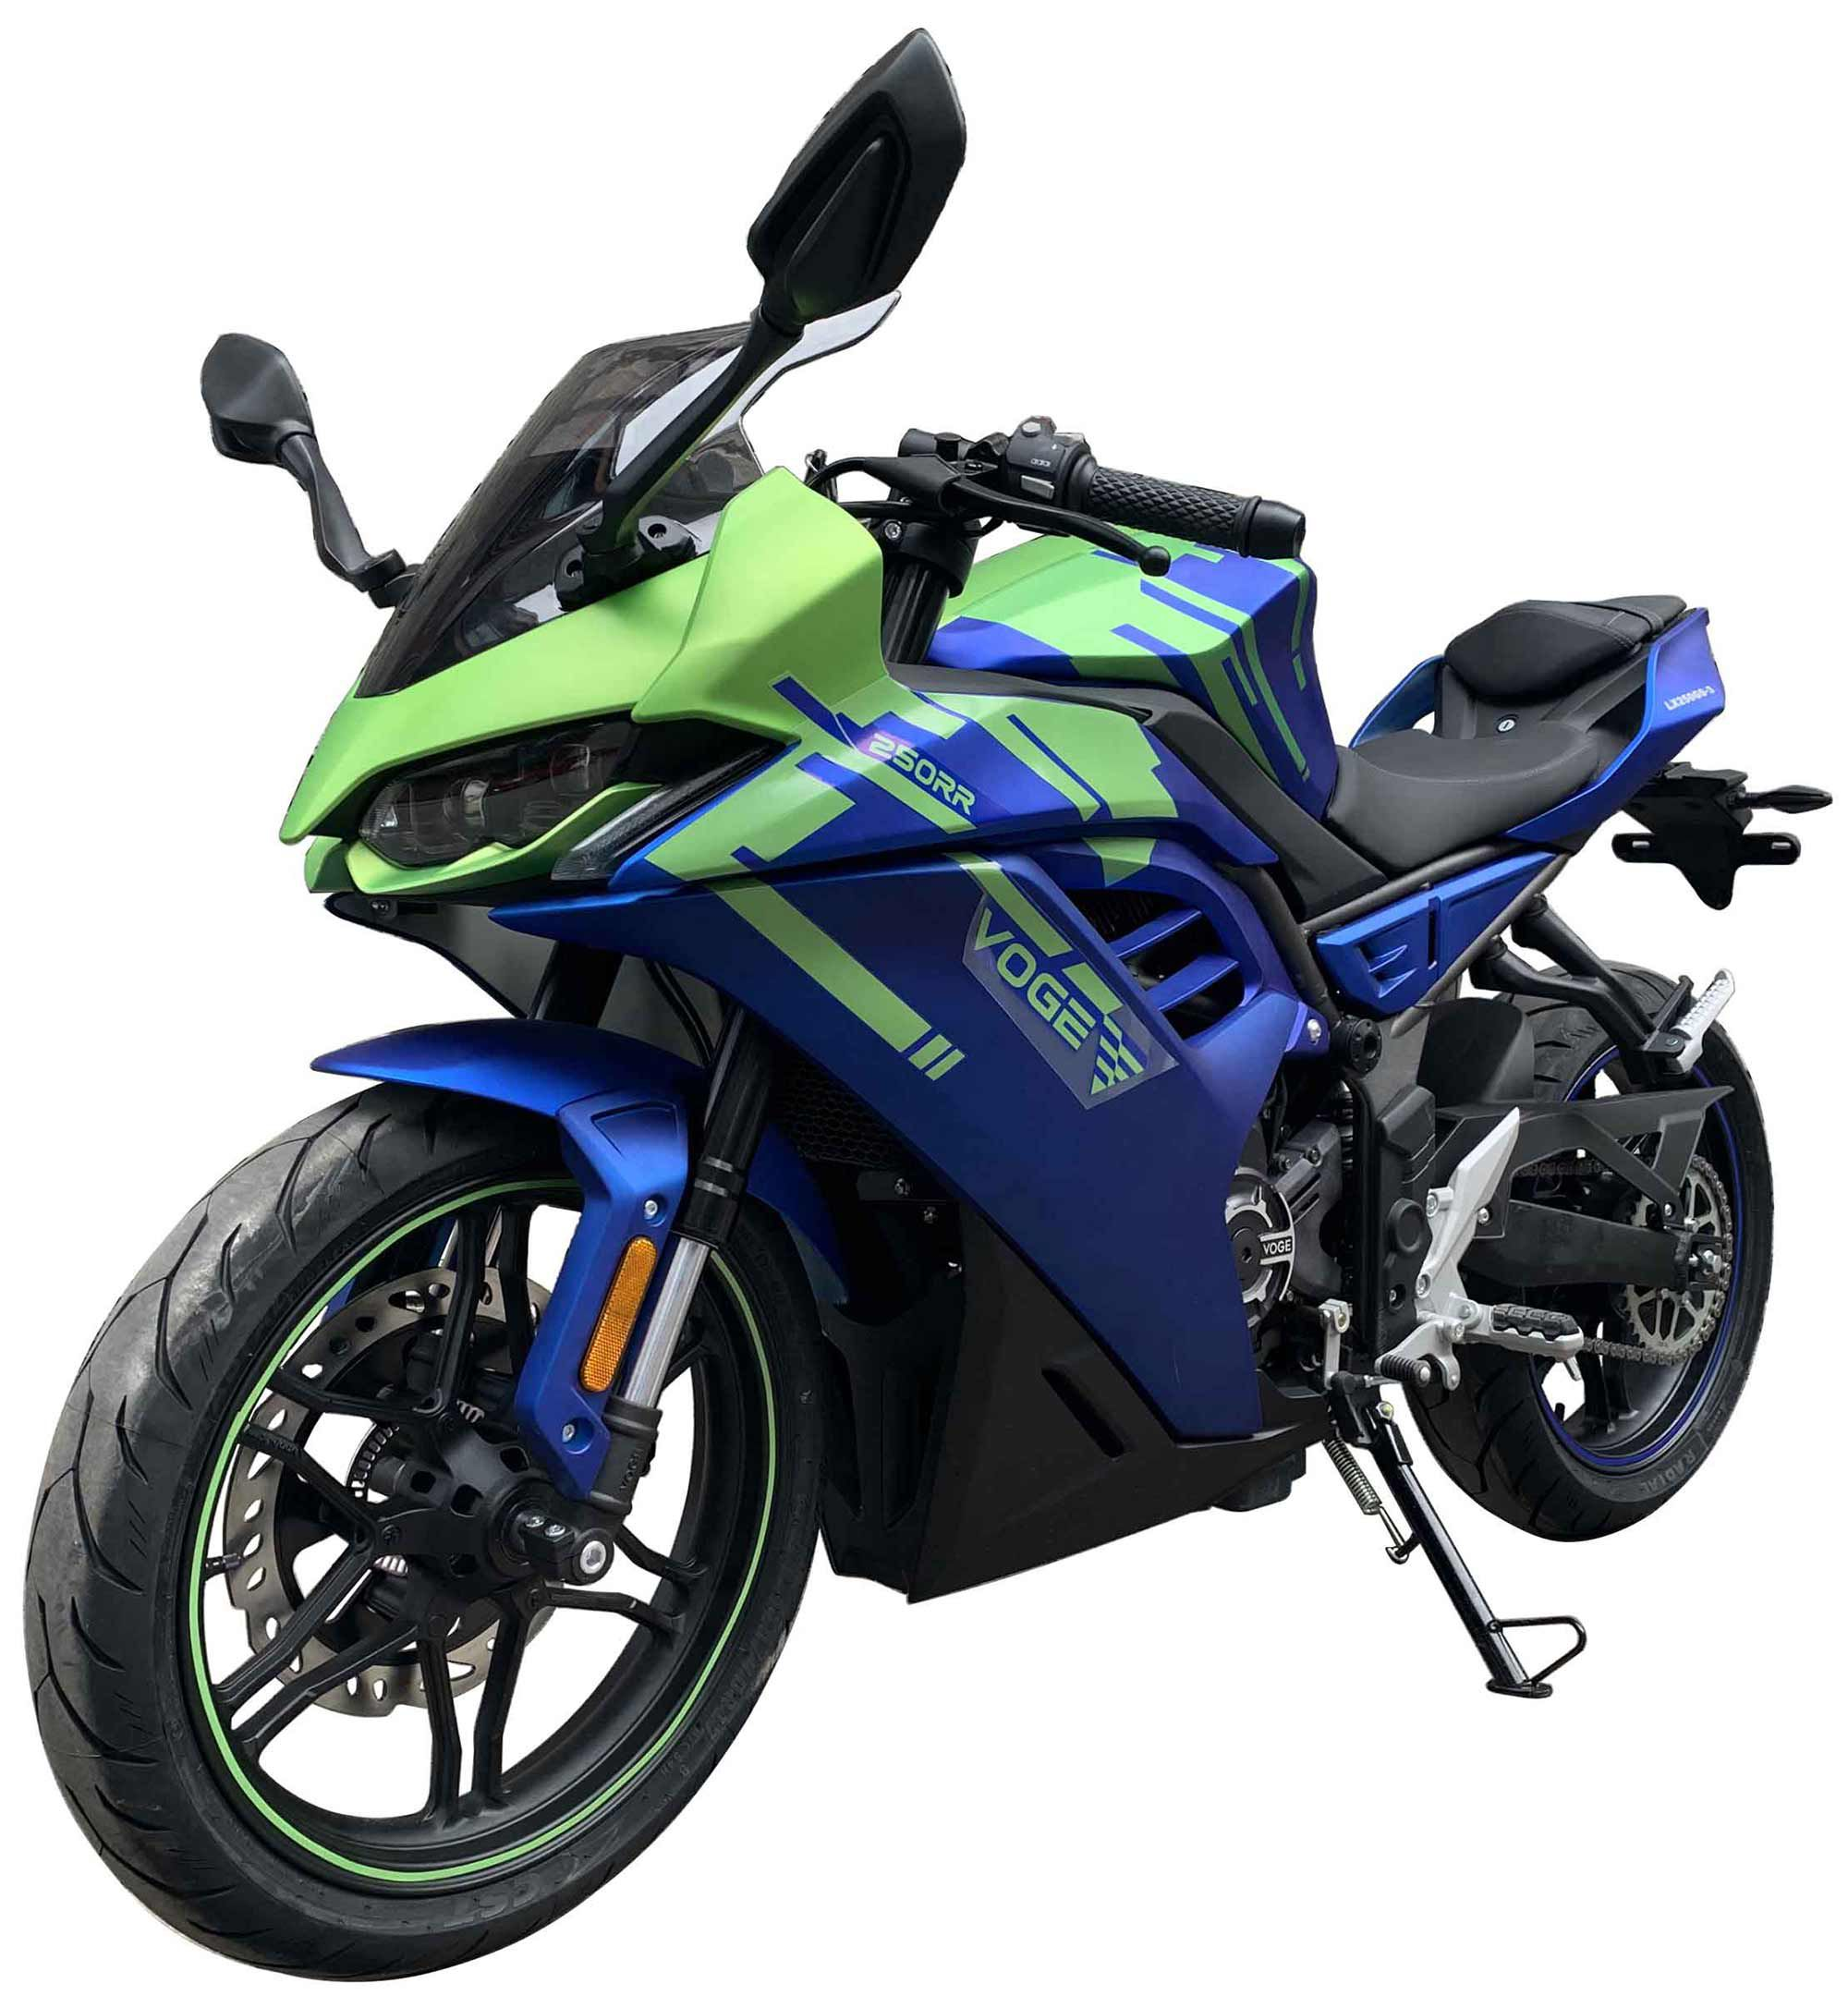 The smaller 250RR brings a single-cylinder engine, a full fairing, and styling inspired by the latest superbikes.